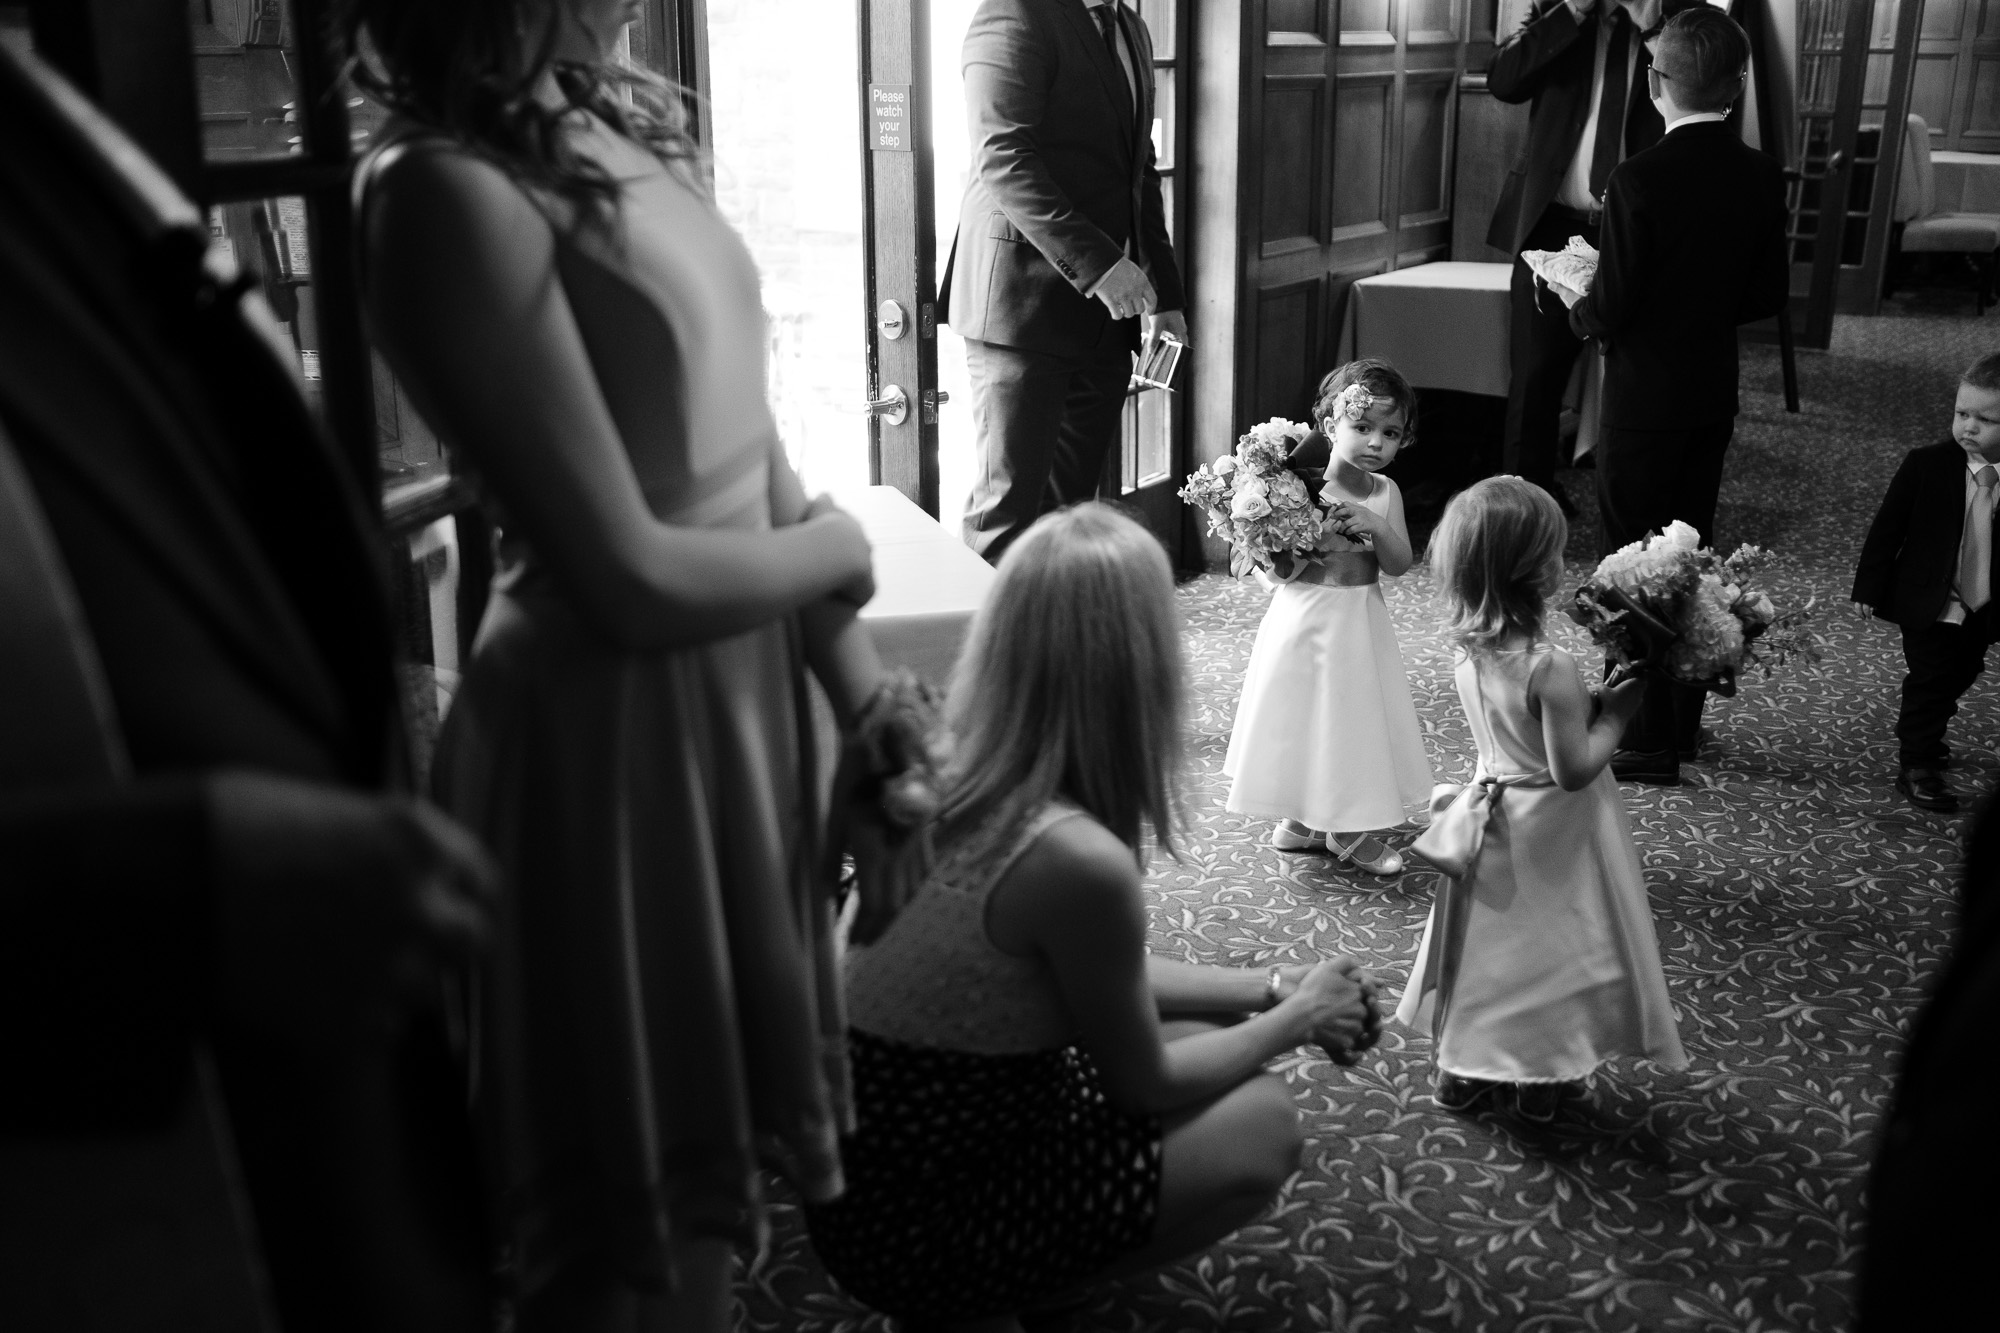 The flower girls wait in anticipation for their turn to lead the bride the down the aisle during the wedding ceremony at the Glenerin Inn outside of Toronto.